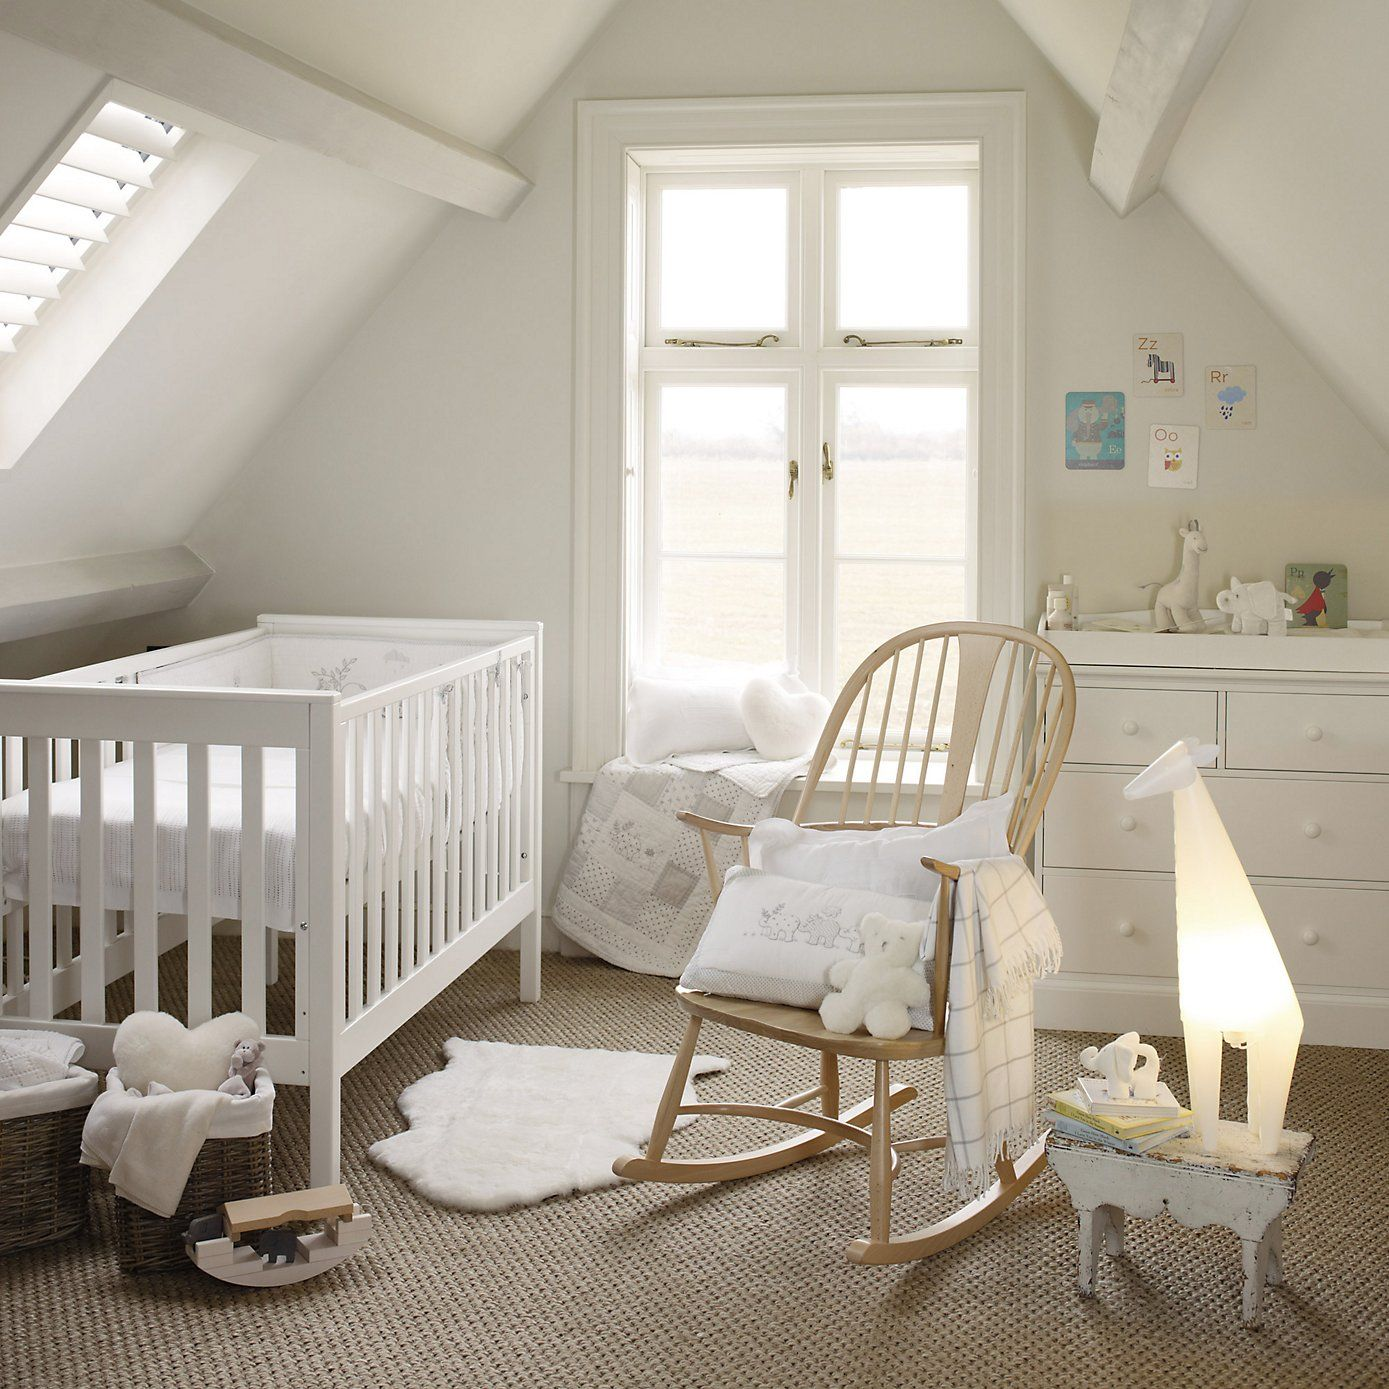 Classic Cot Bed from The White Company | Baby room | Pinterest